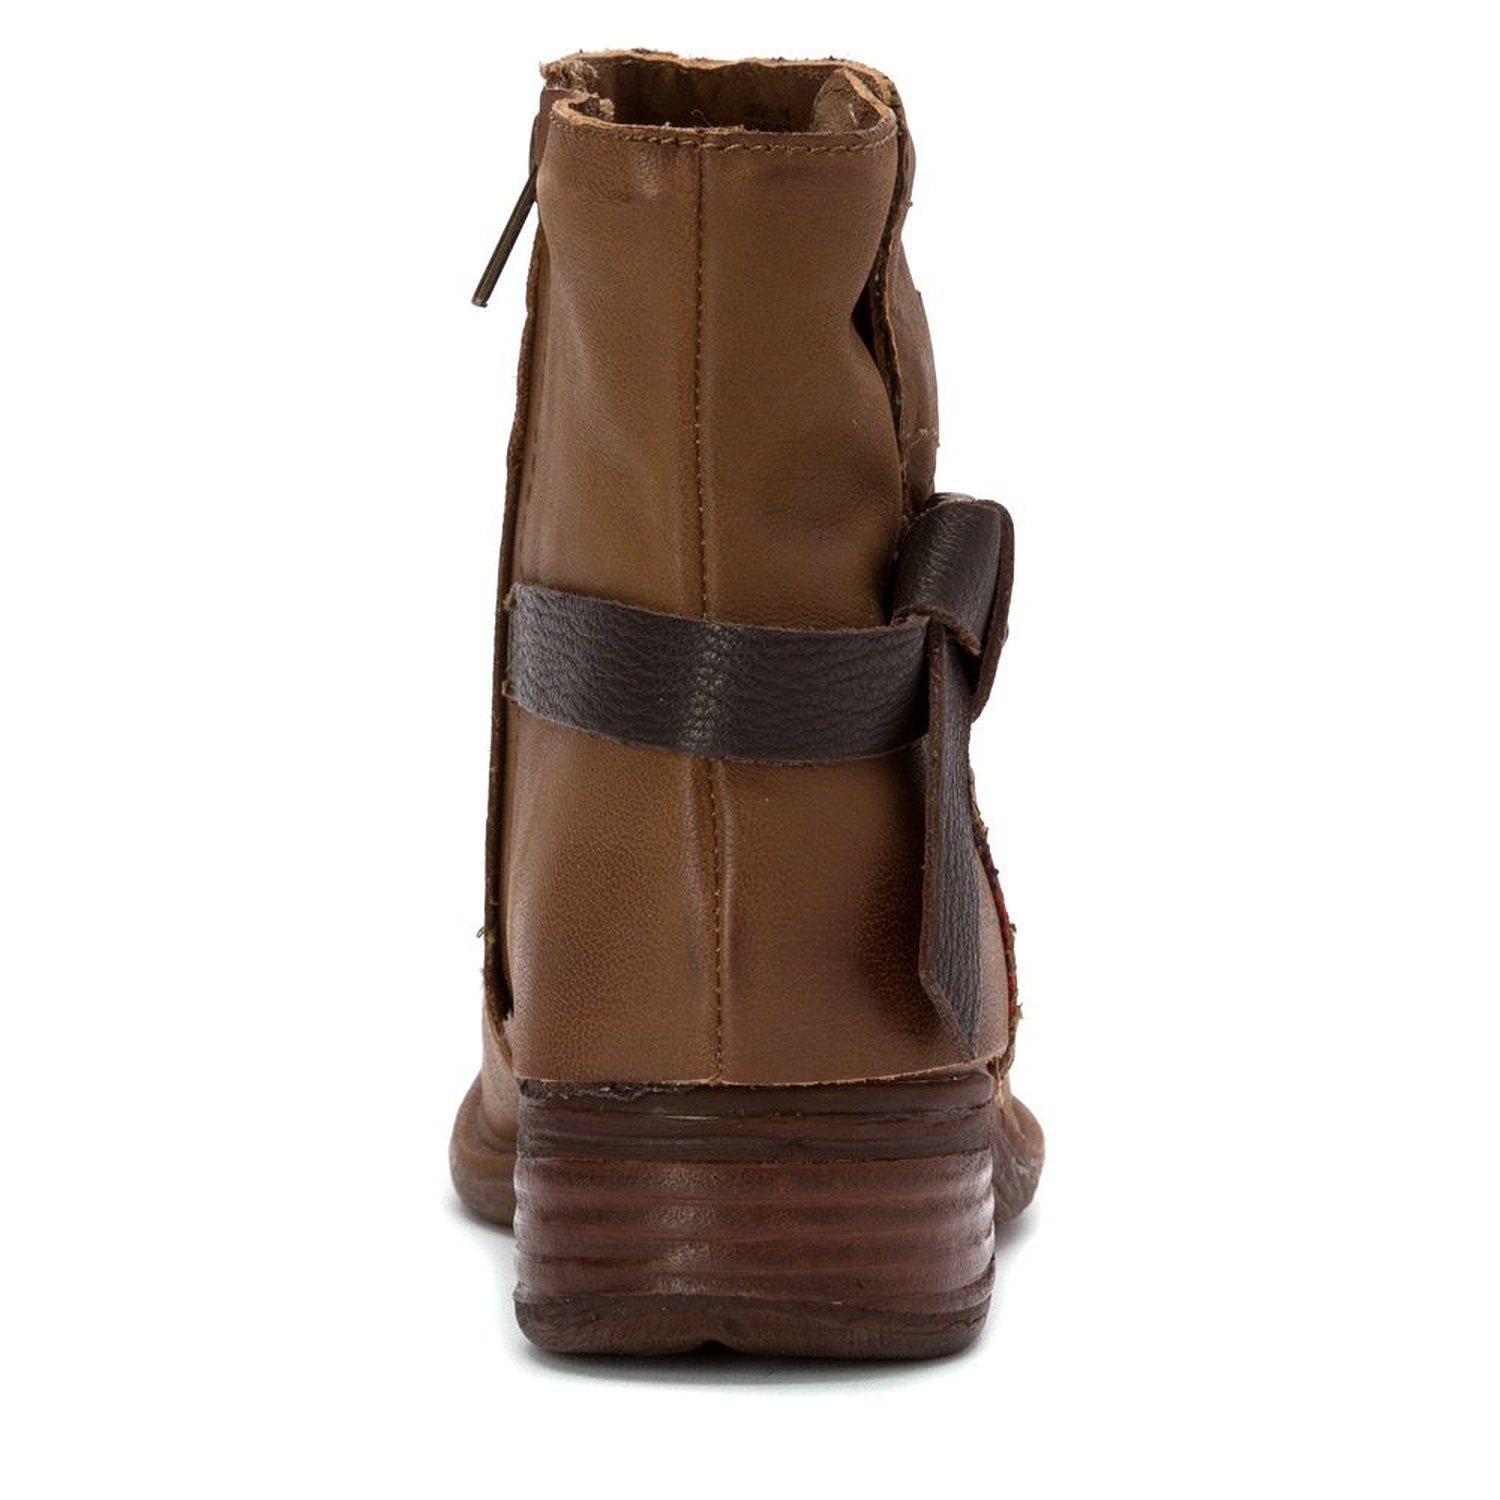 OTBT Women's Custer Boot